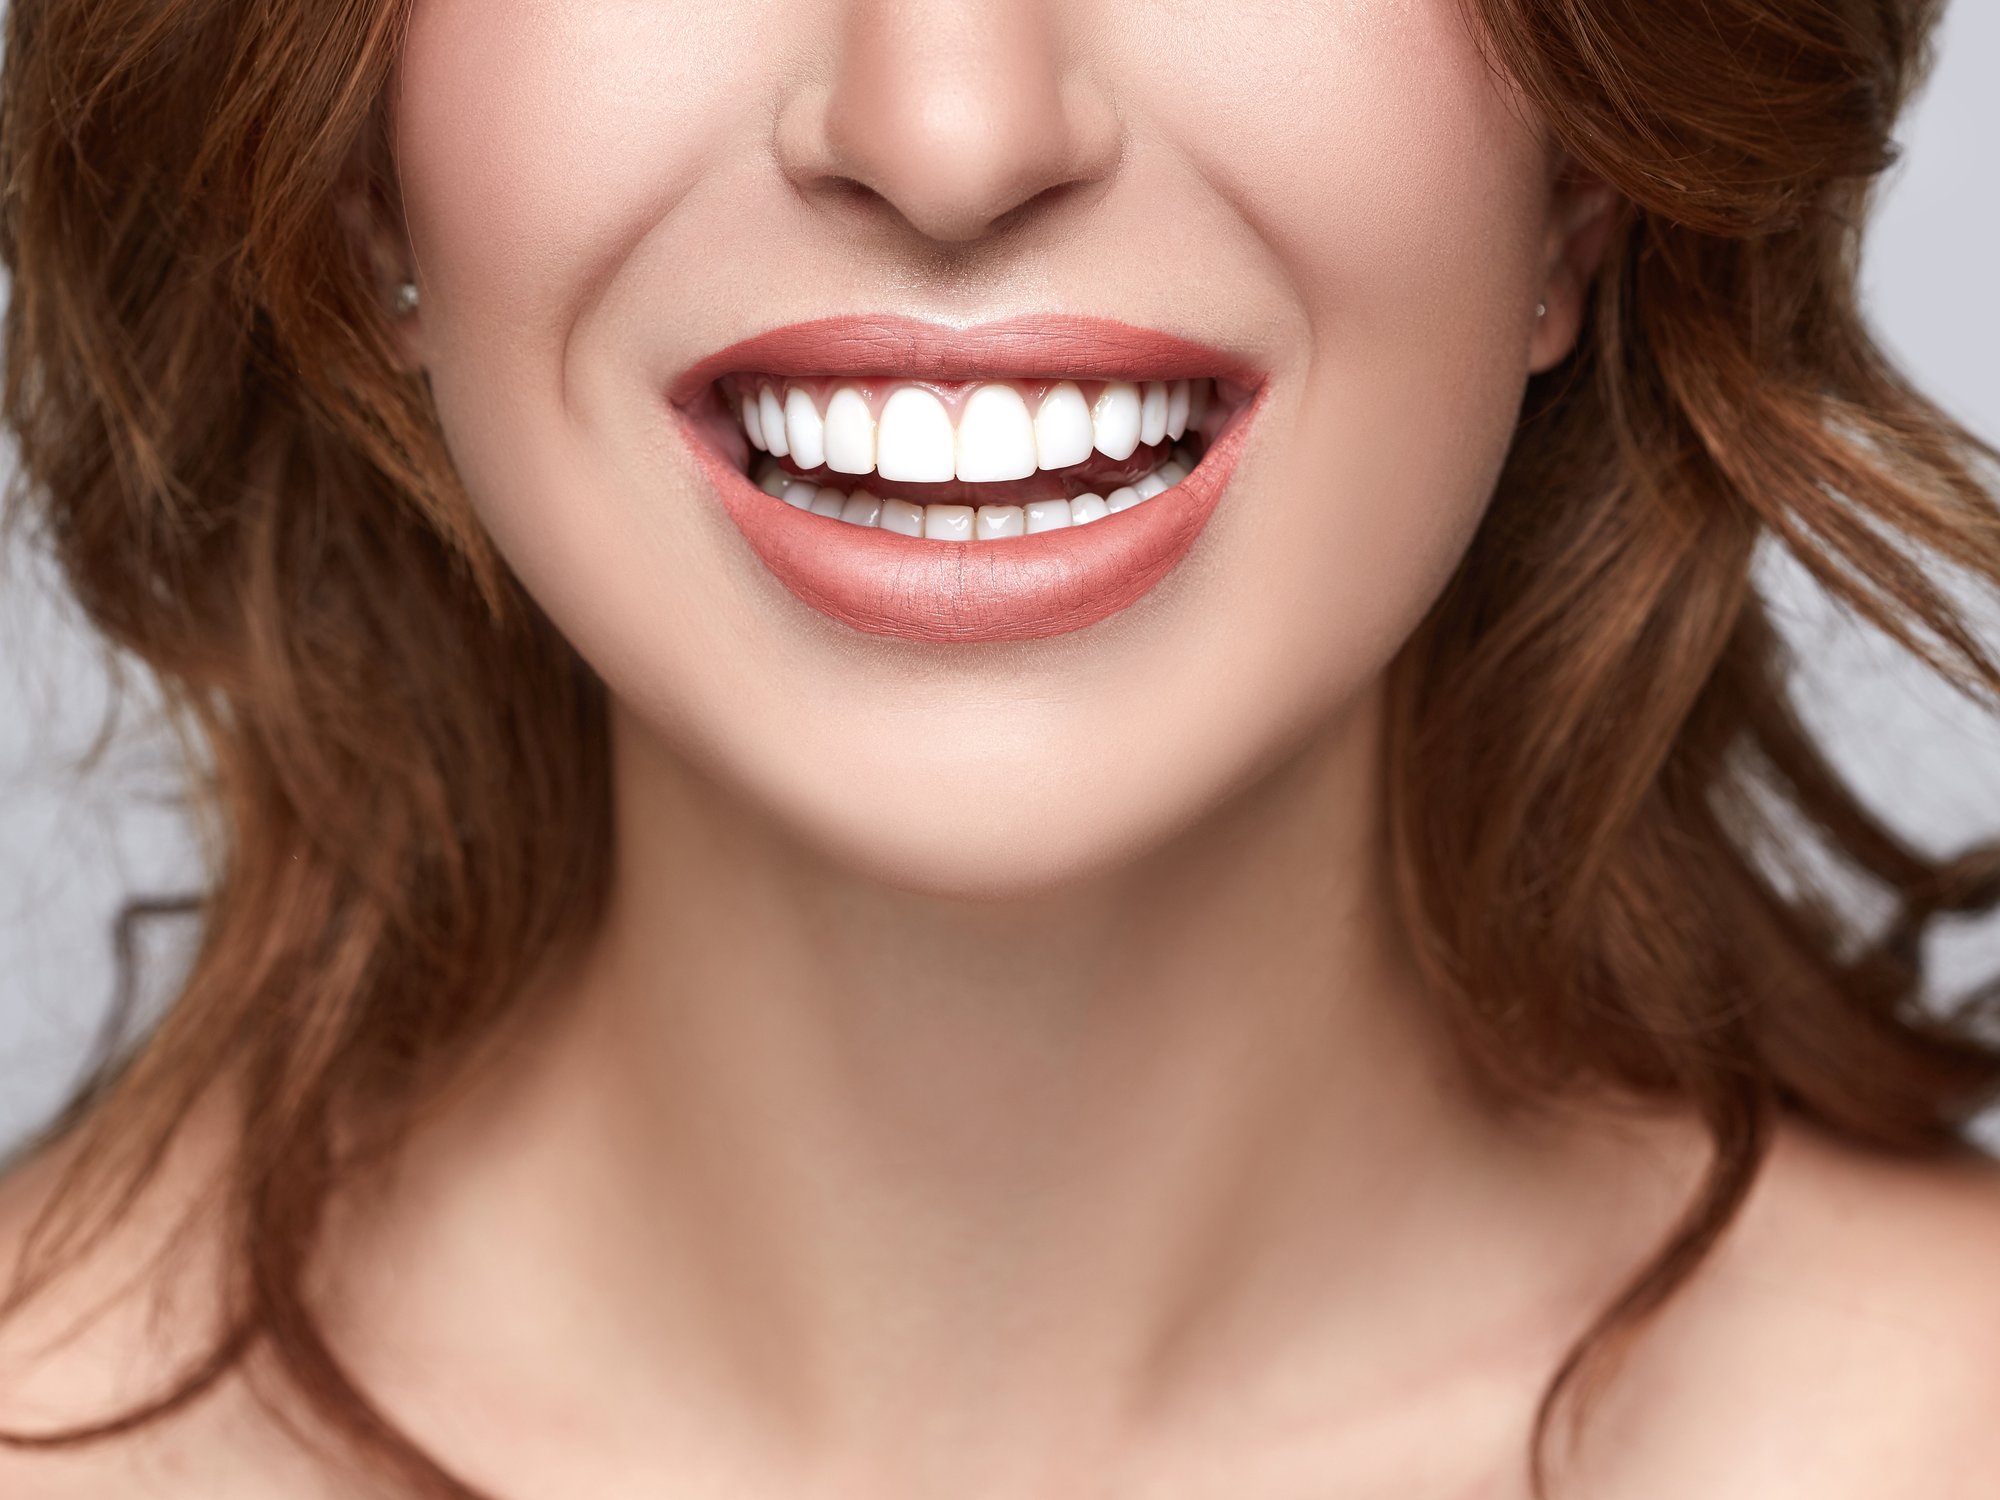 Lumineers vs. Porcelain Veneers: Which Is Right for You?